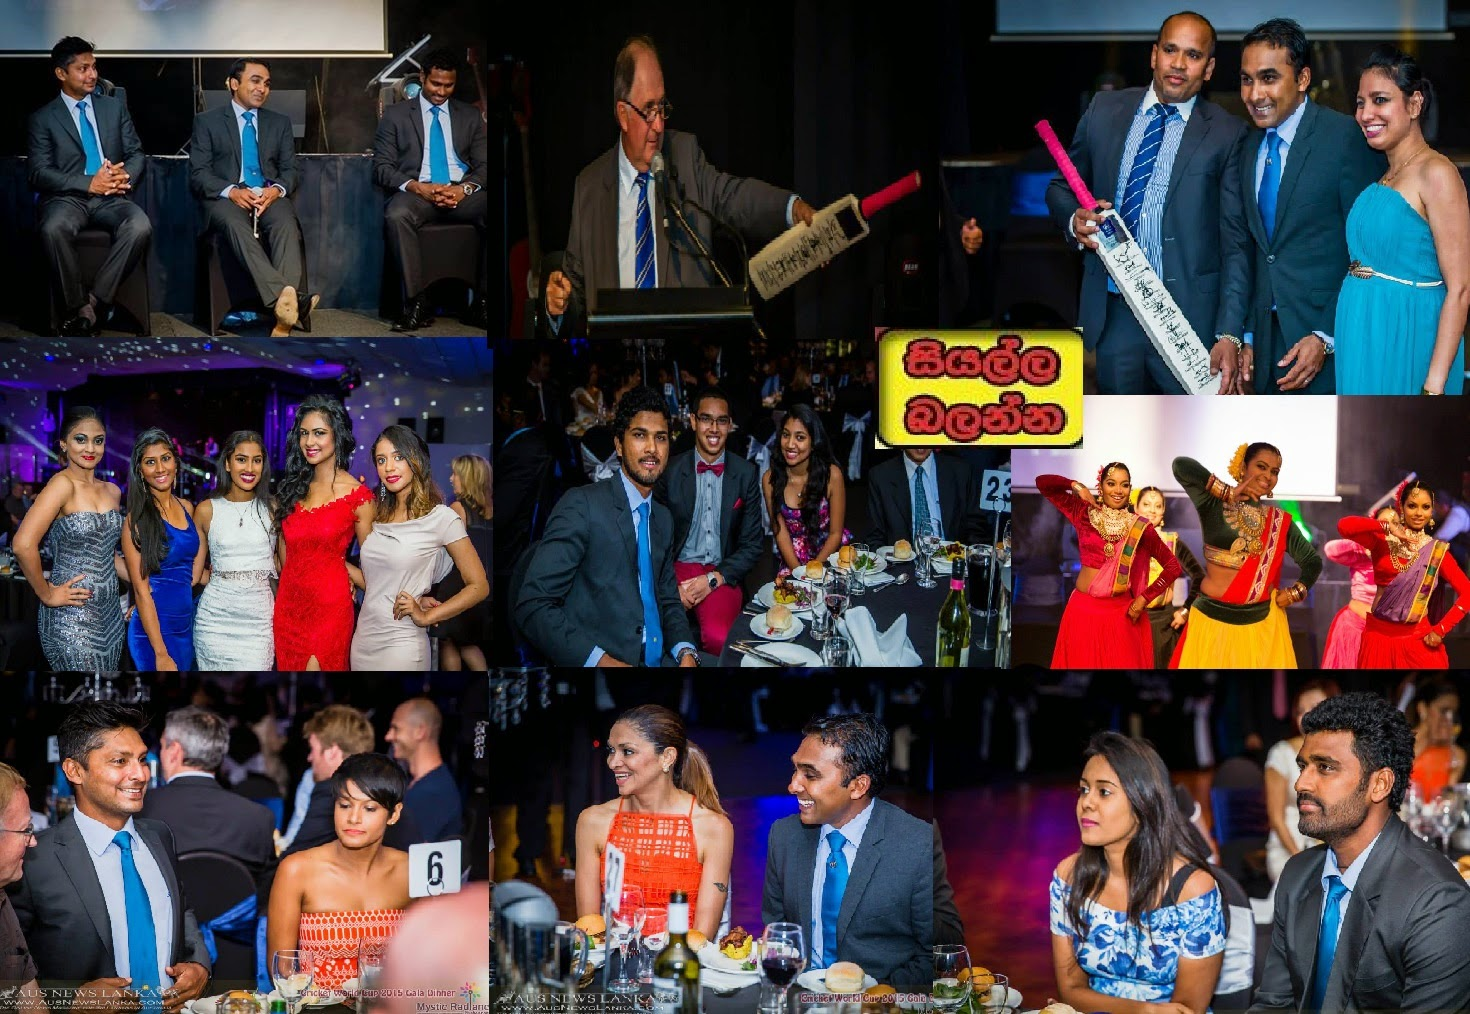 http://picture.gossiplankahotnews.com/2015/03/sri-lanka-cricket-gala-dinner-2015.html